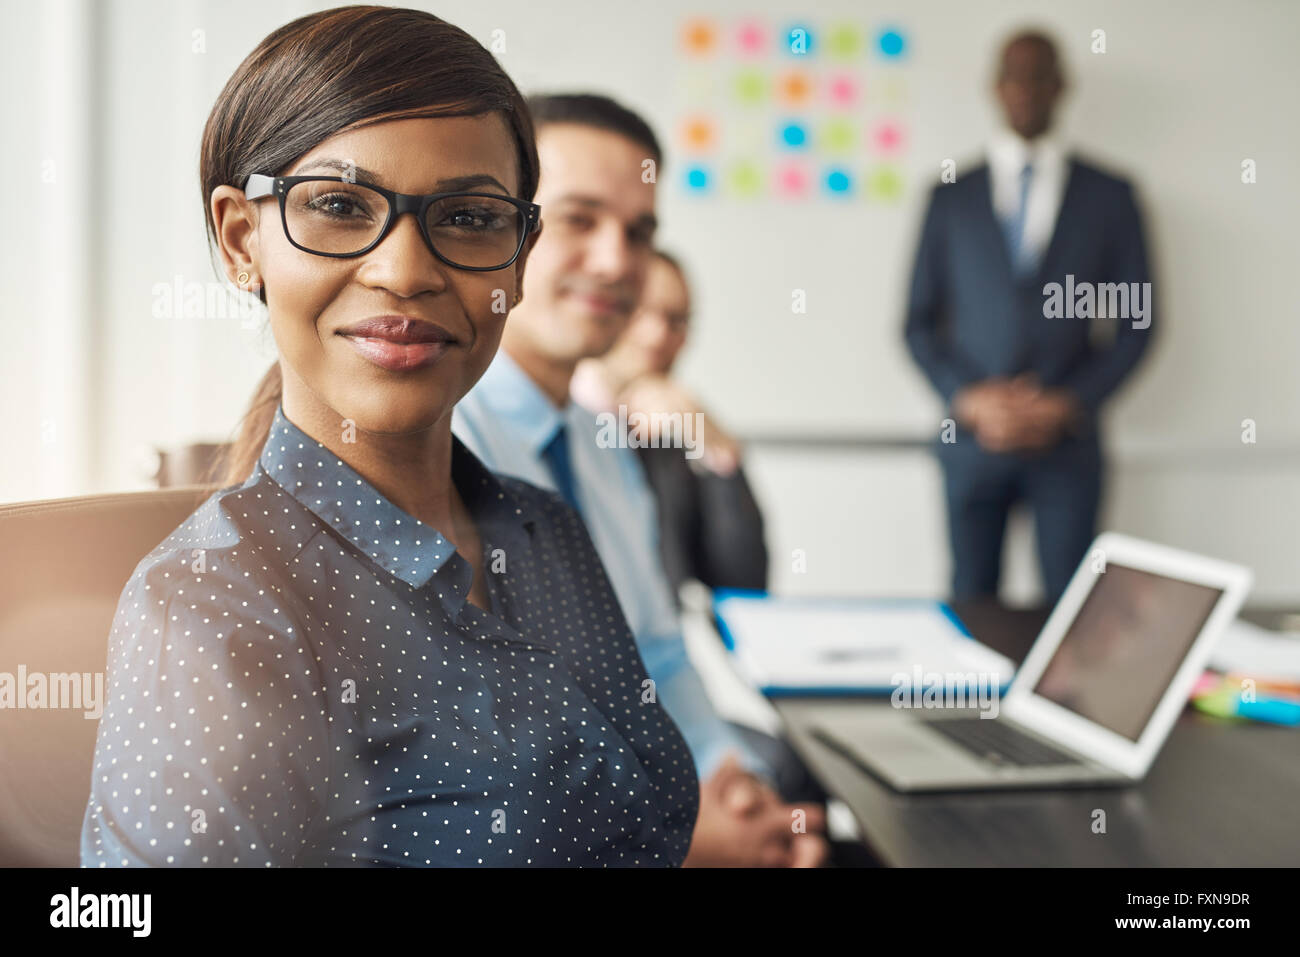 Beautiful cheerful professional woman wearing eyeglasses seated with male co-workers and team leader in conference - Stock Image